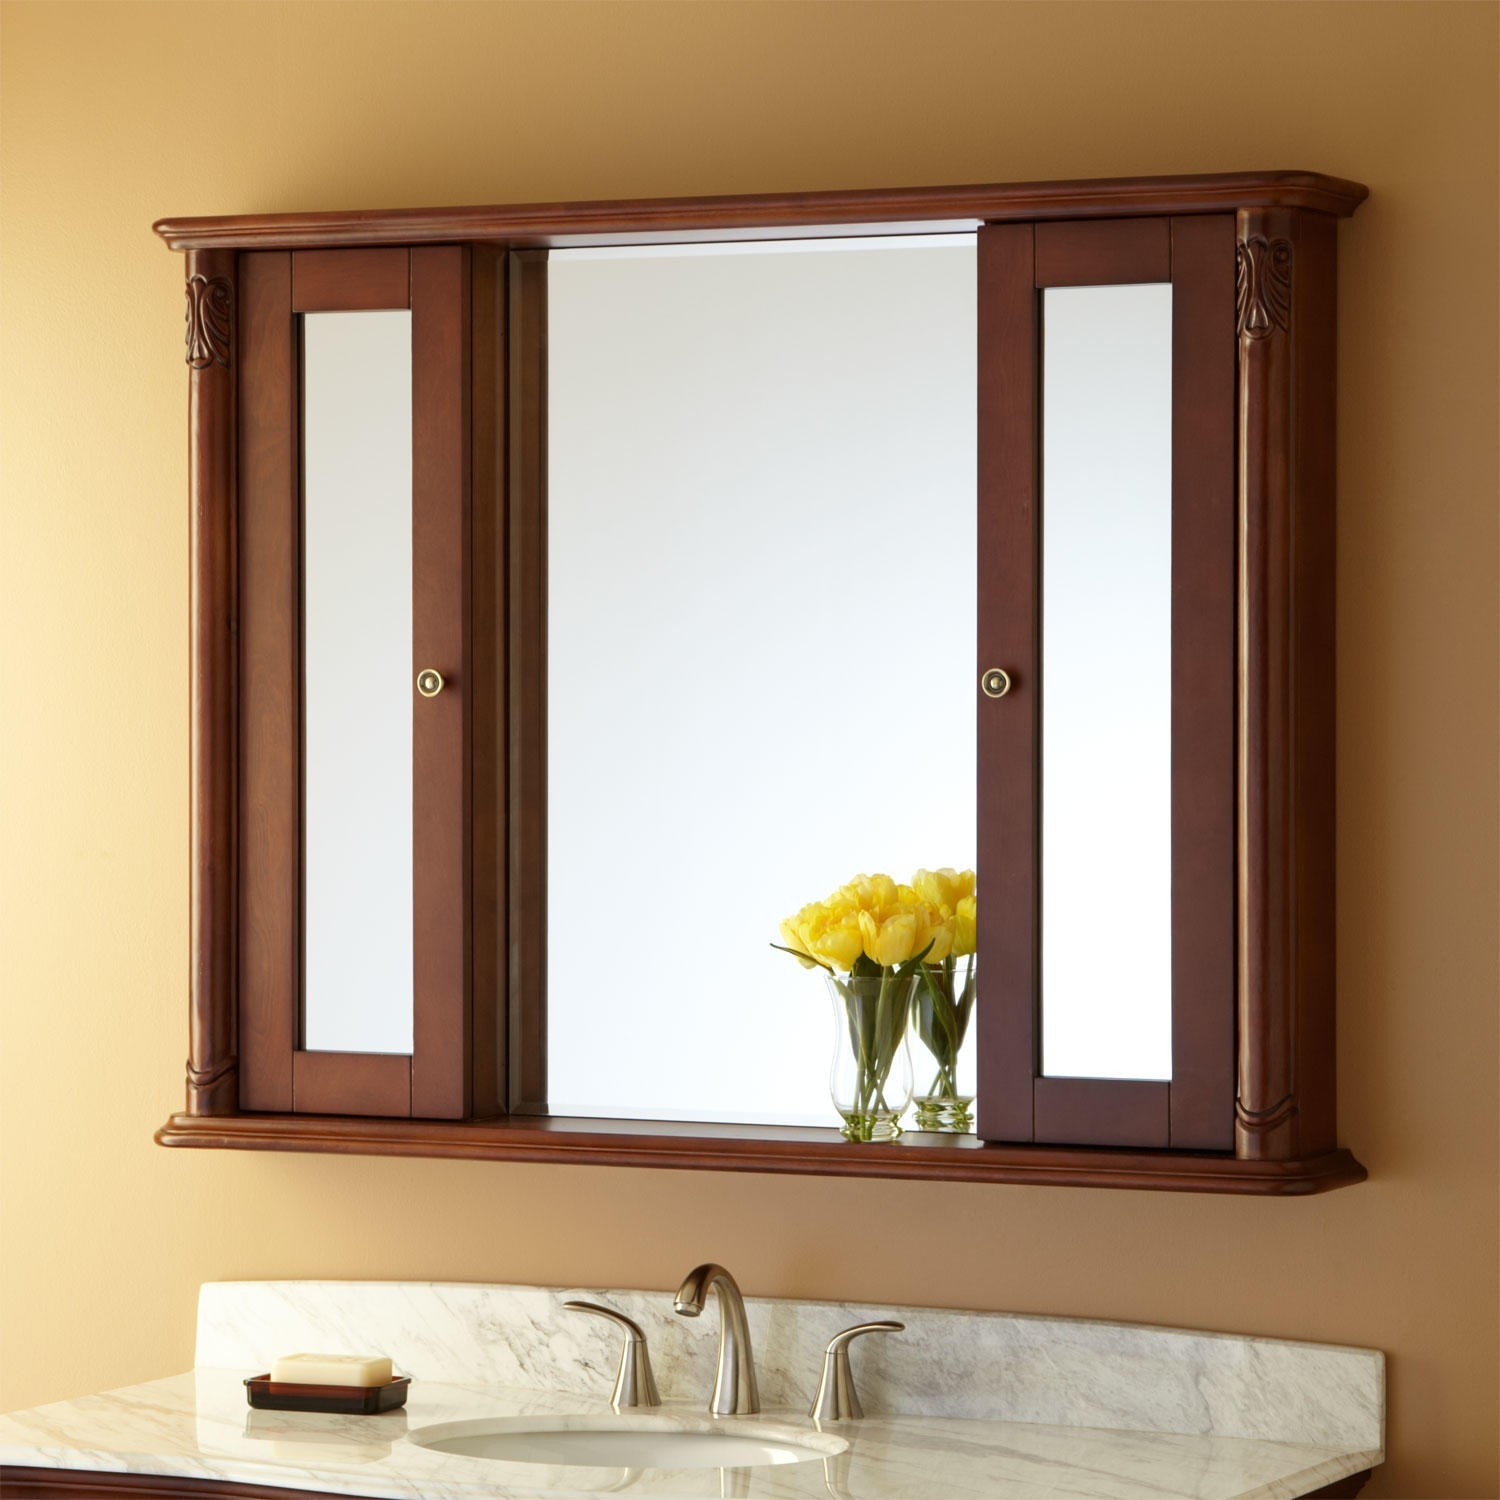 Bathroom Large Wood Wall Mounted Bathroom Medicine Cabinet With With Large Brown Mirror (Image 3 of 15)